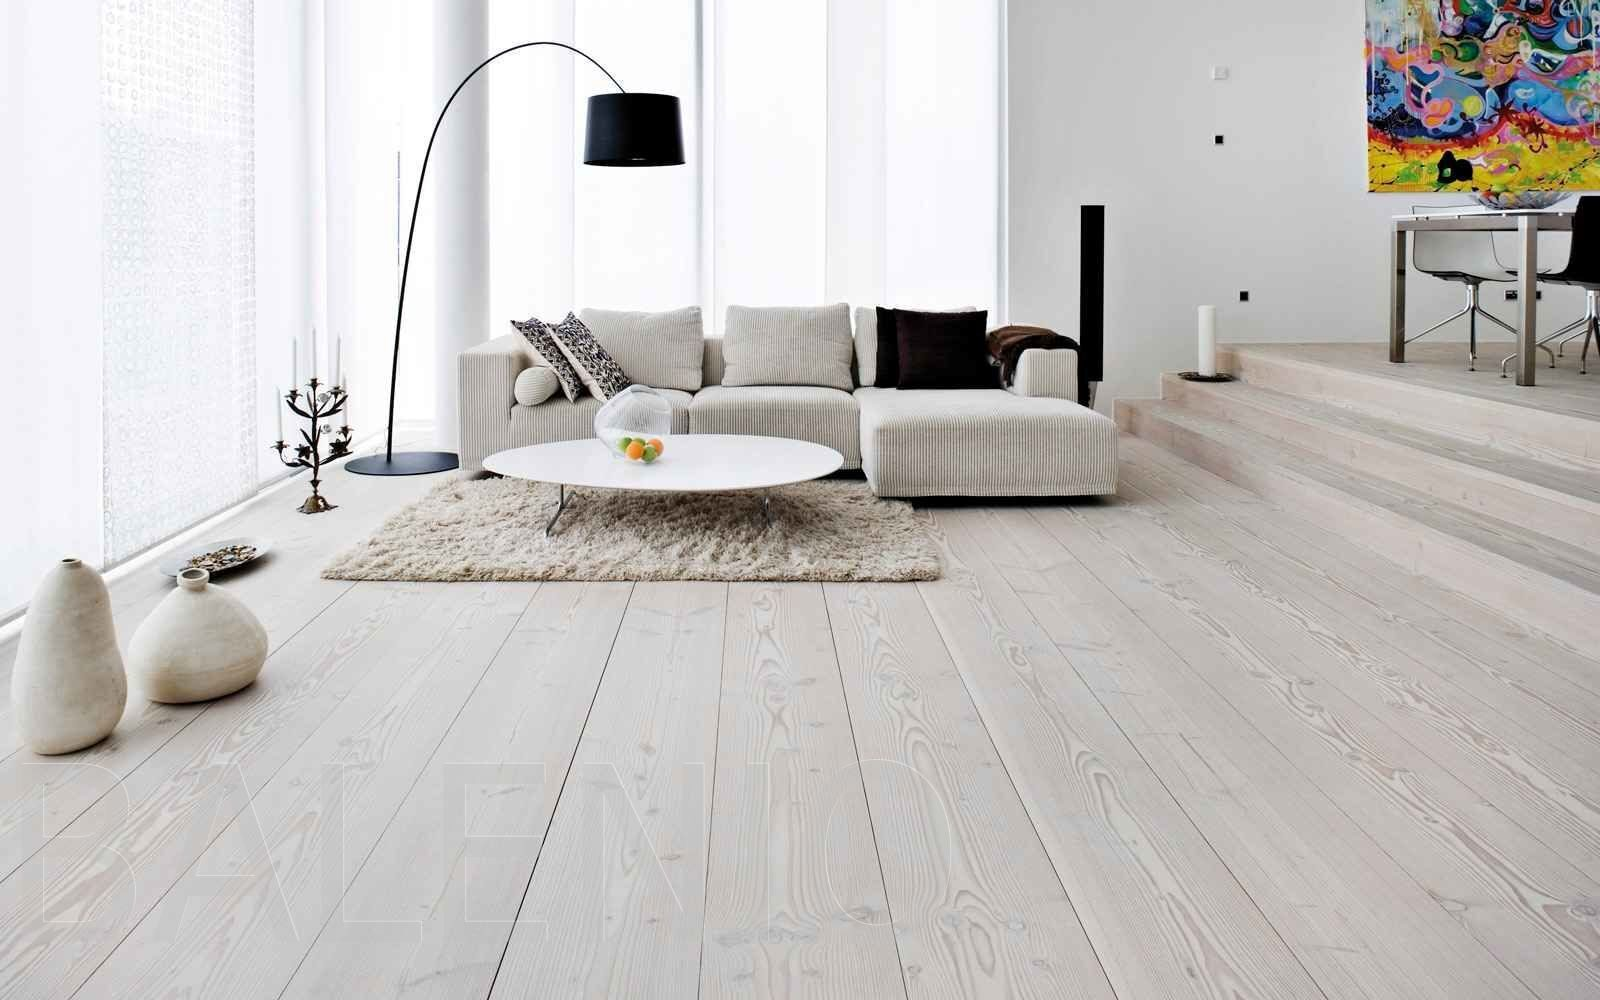 pure-white-laminate-flooring-ac-finsa-fiesta-alba-oak-laminate-laminate-flooring-in-living-room